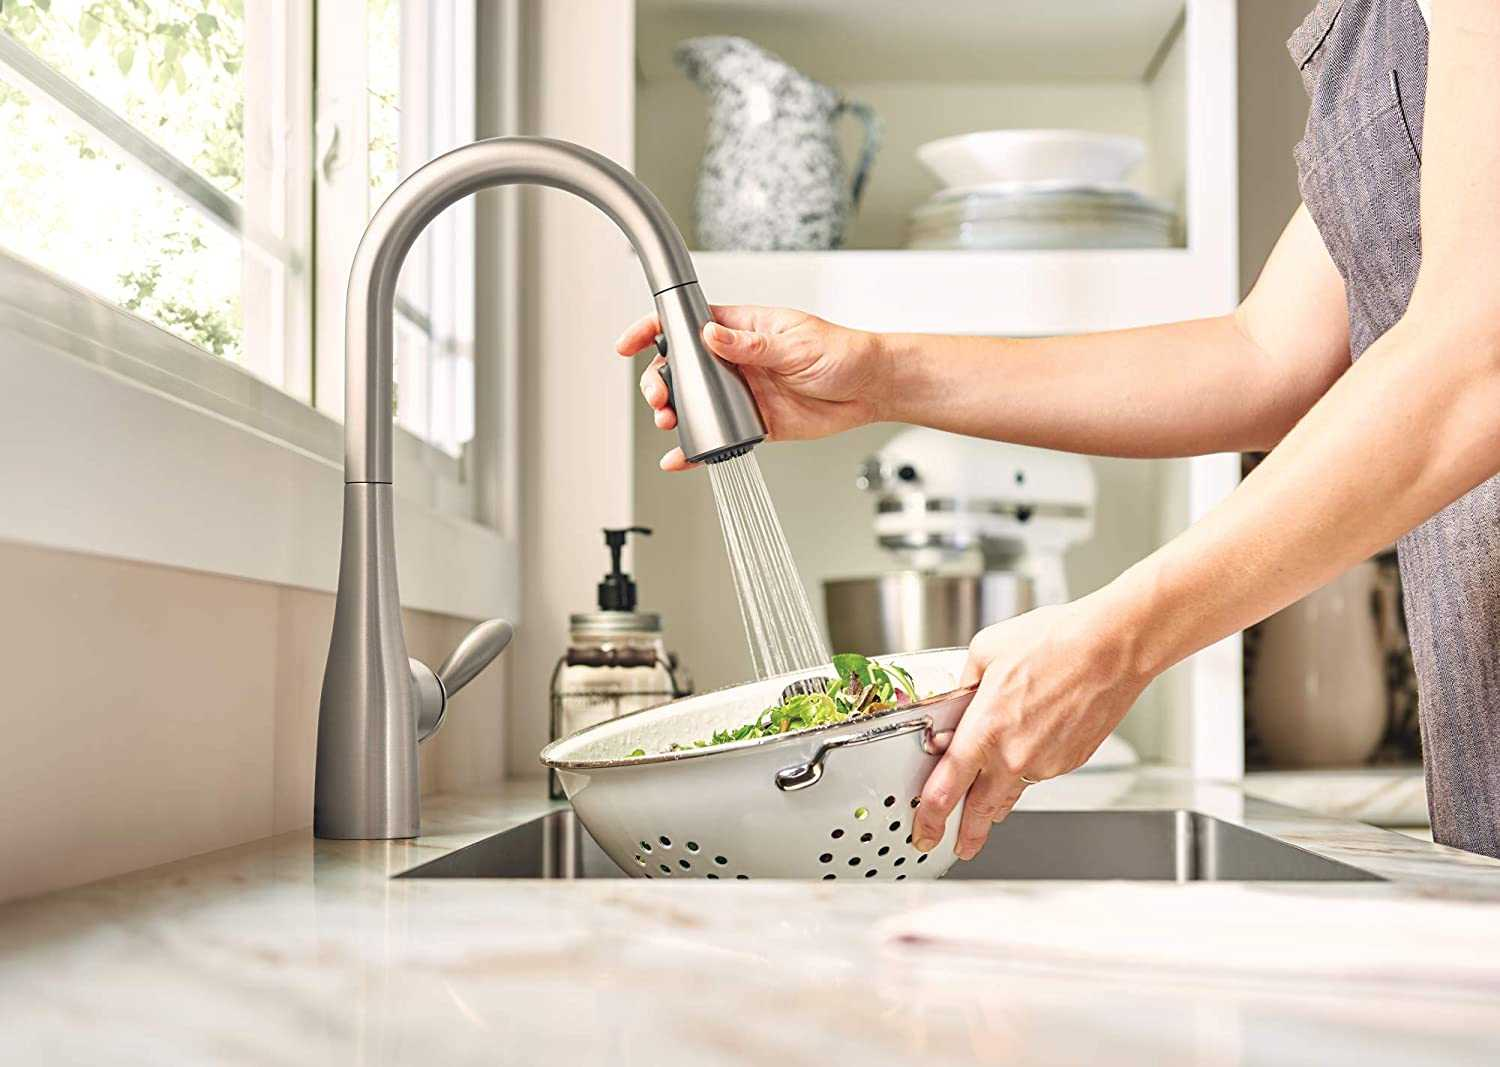 Top Reasons For Dripping Kitchen Faucets